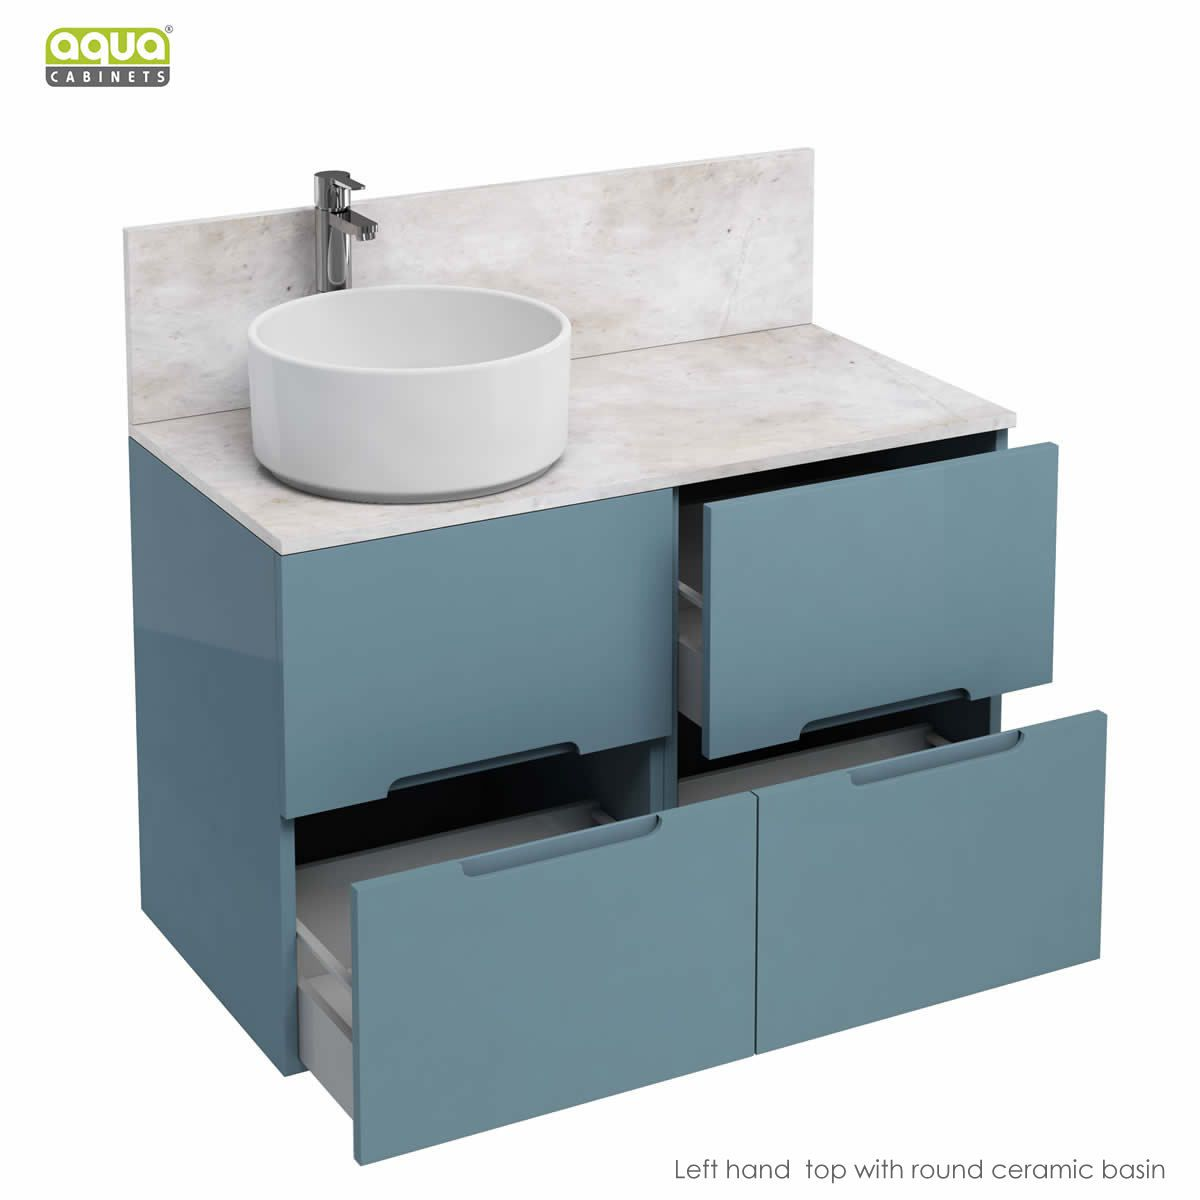 Aqua Cabinets D1000 Freestanding Double Drawer Unit With